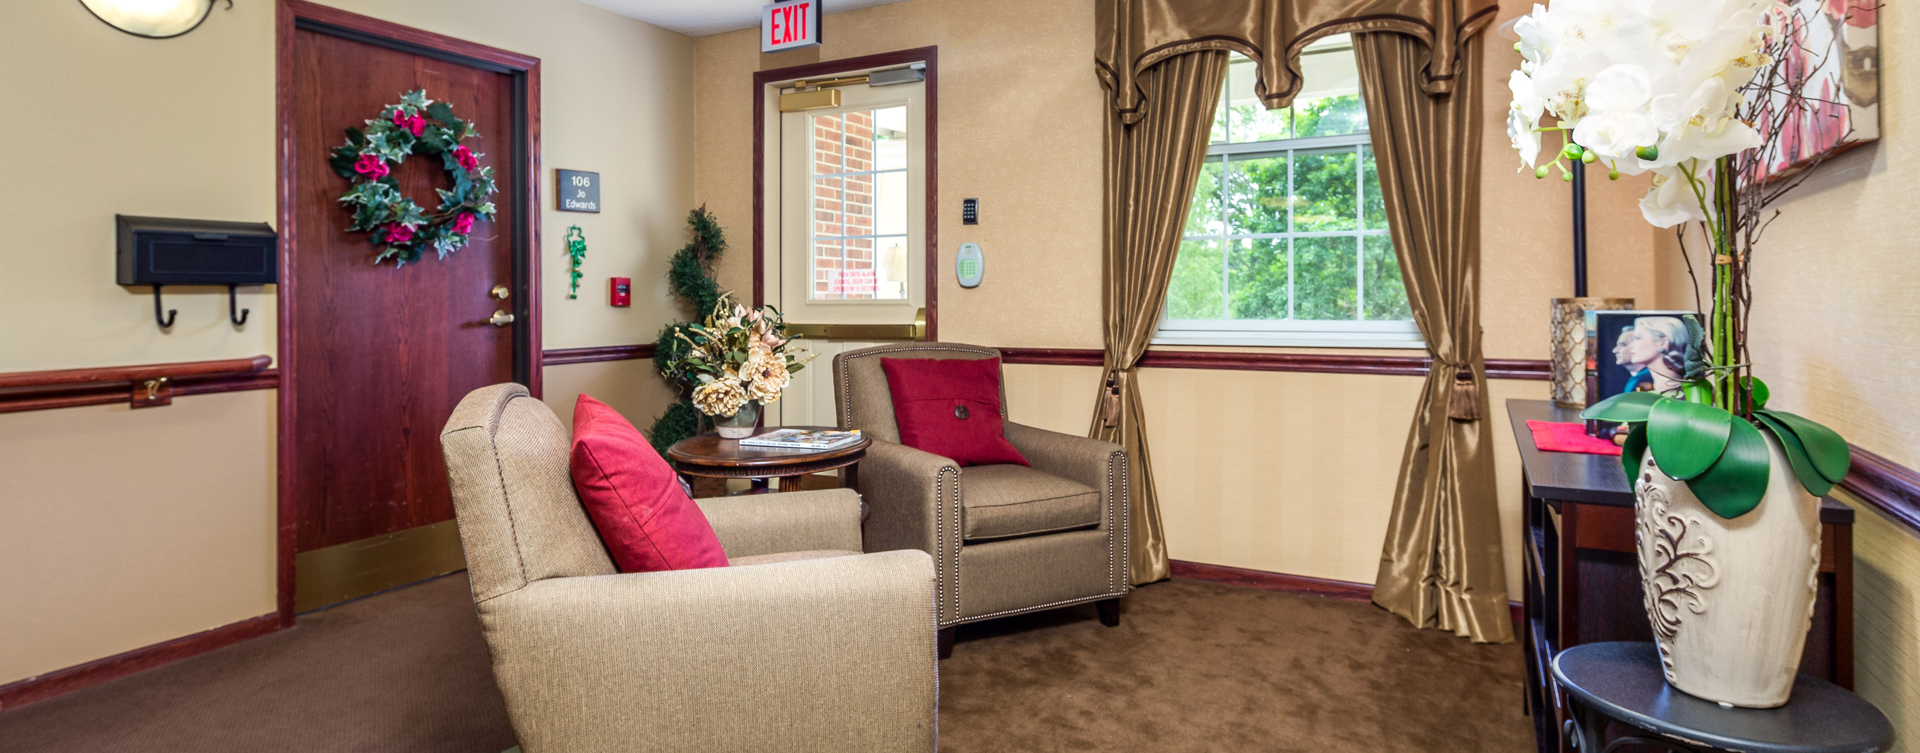 Enjoy a good book in the sitting area at Bickford of Battle Creek